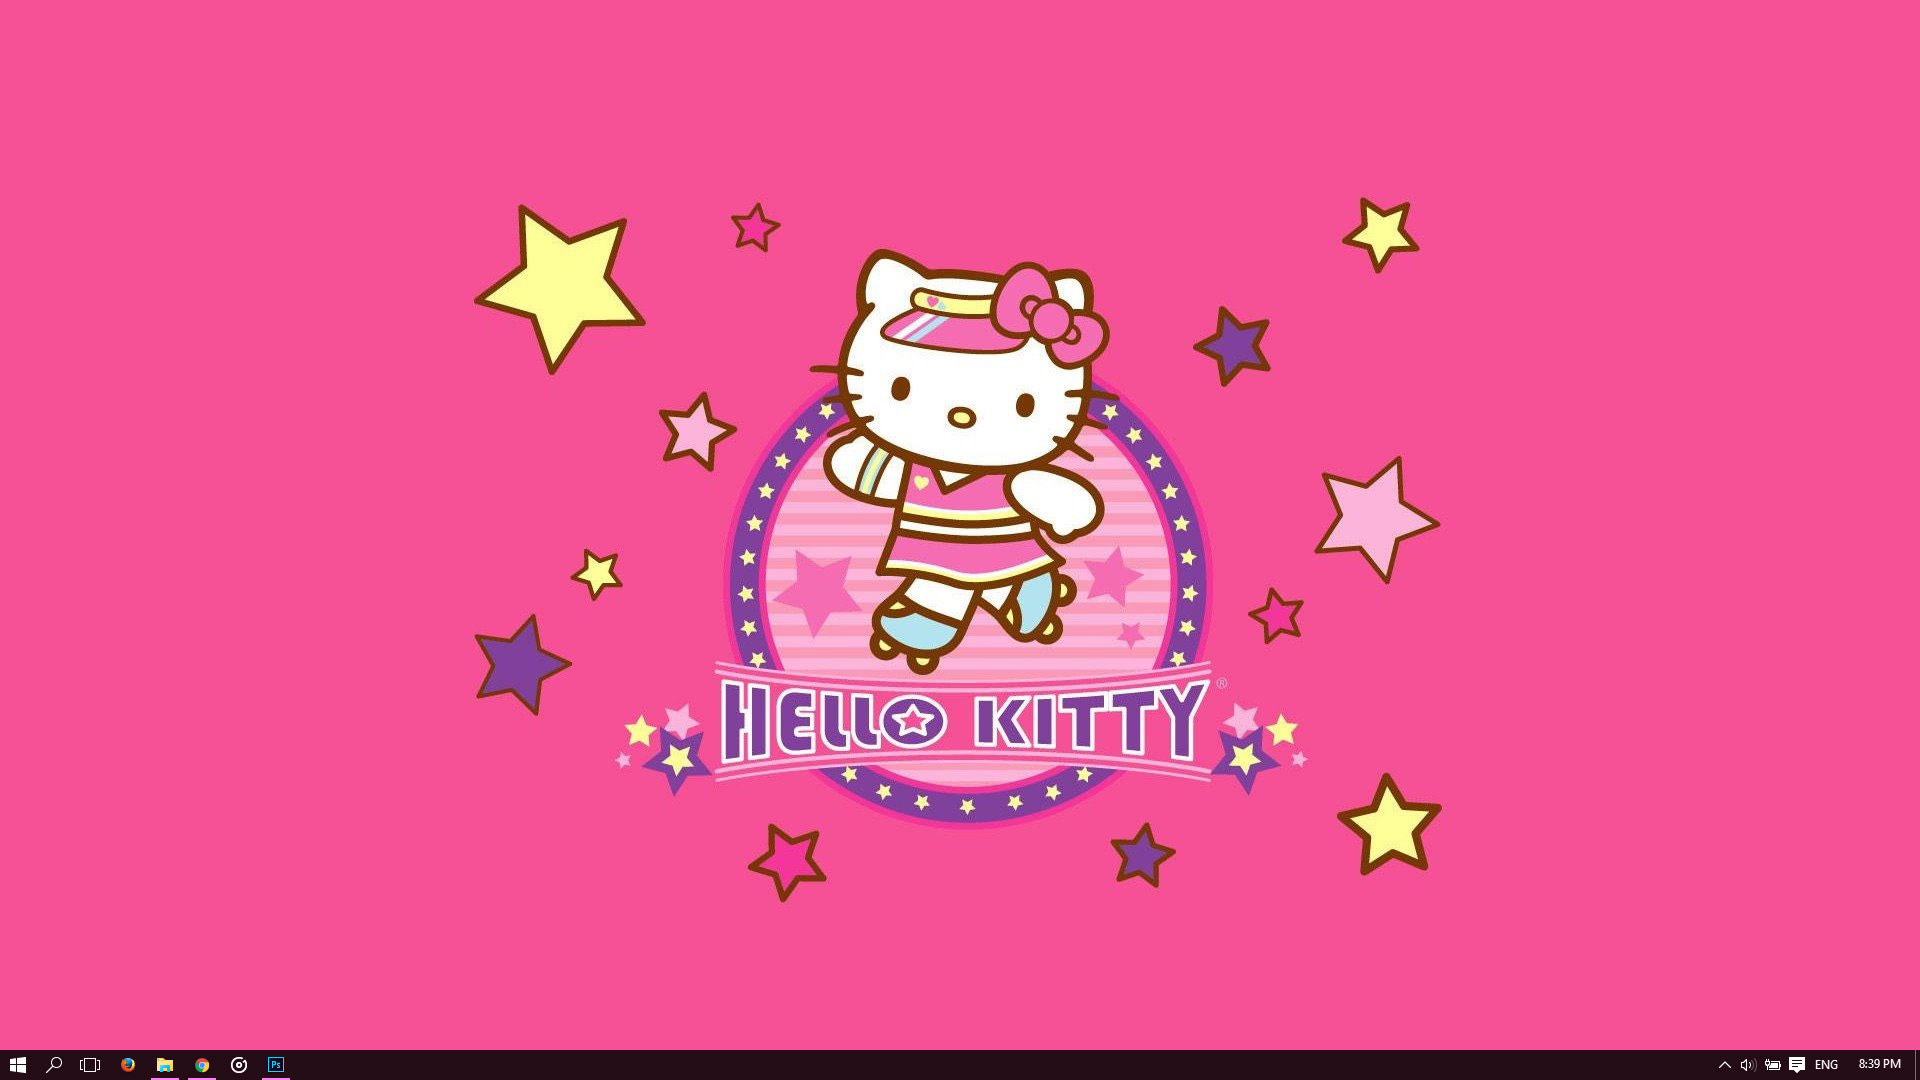 Hello kitty wallpaper for pc 66 images 1920x1200 hello kitty 525422 voltagebd Choice Image